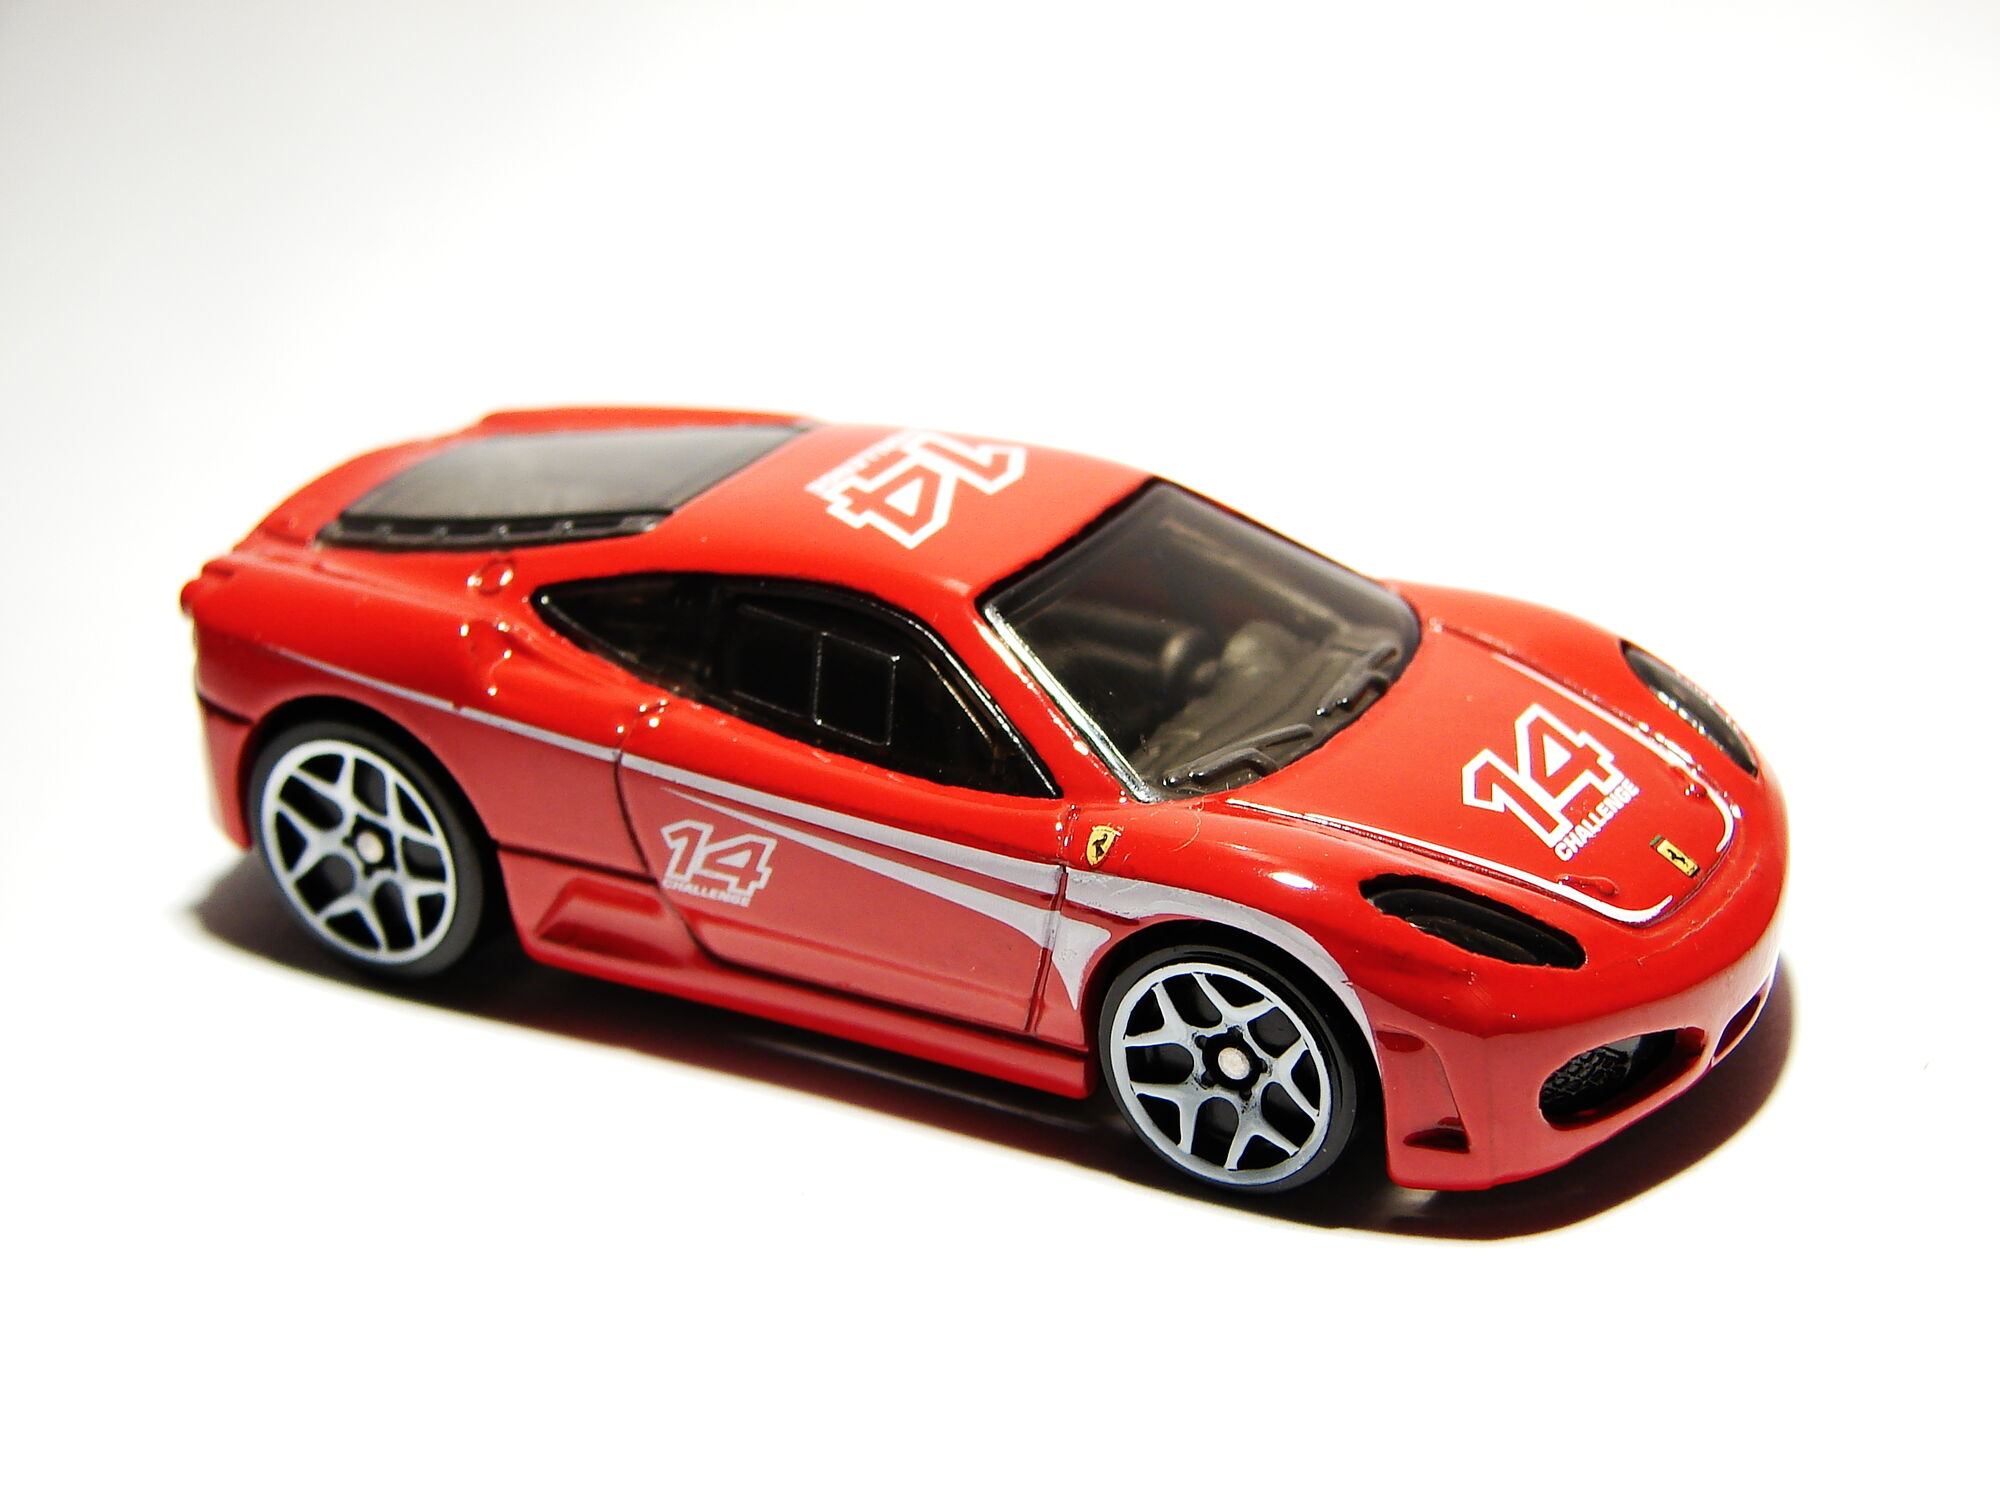 ferrari f430 challenge hot wheels wiki fandom powered. Black Bedroom Furniture Sets. Home Design Ideas